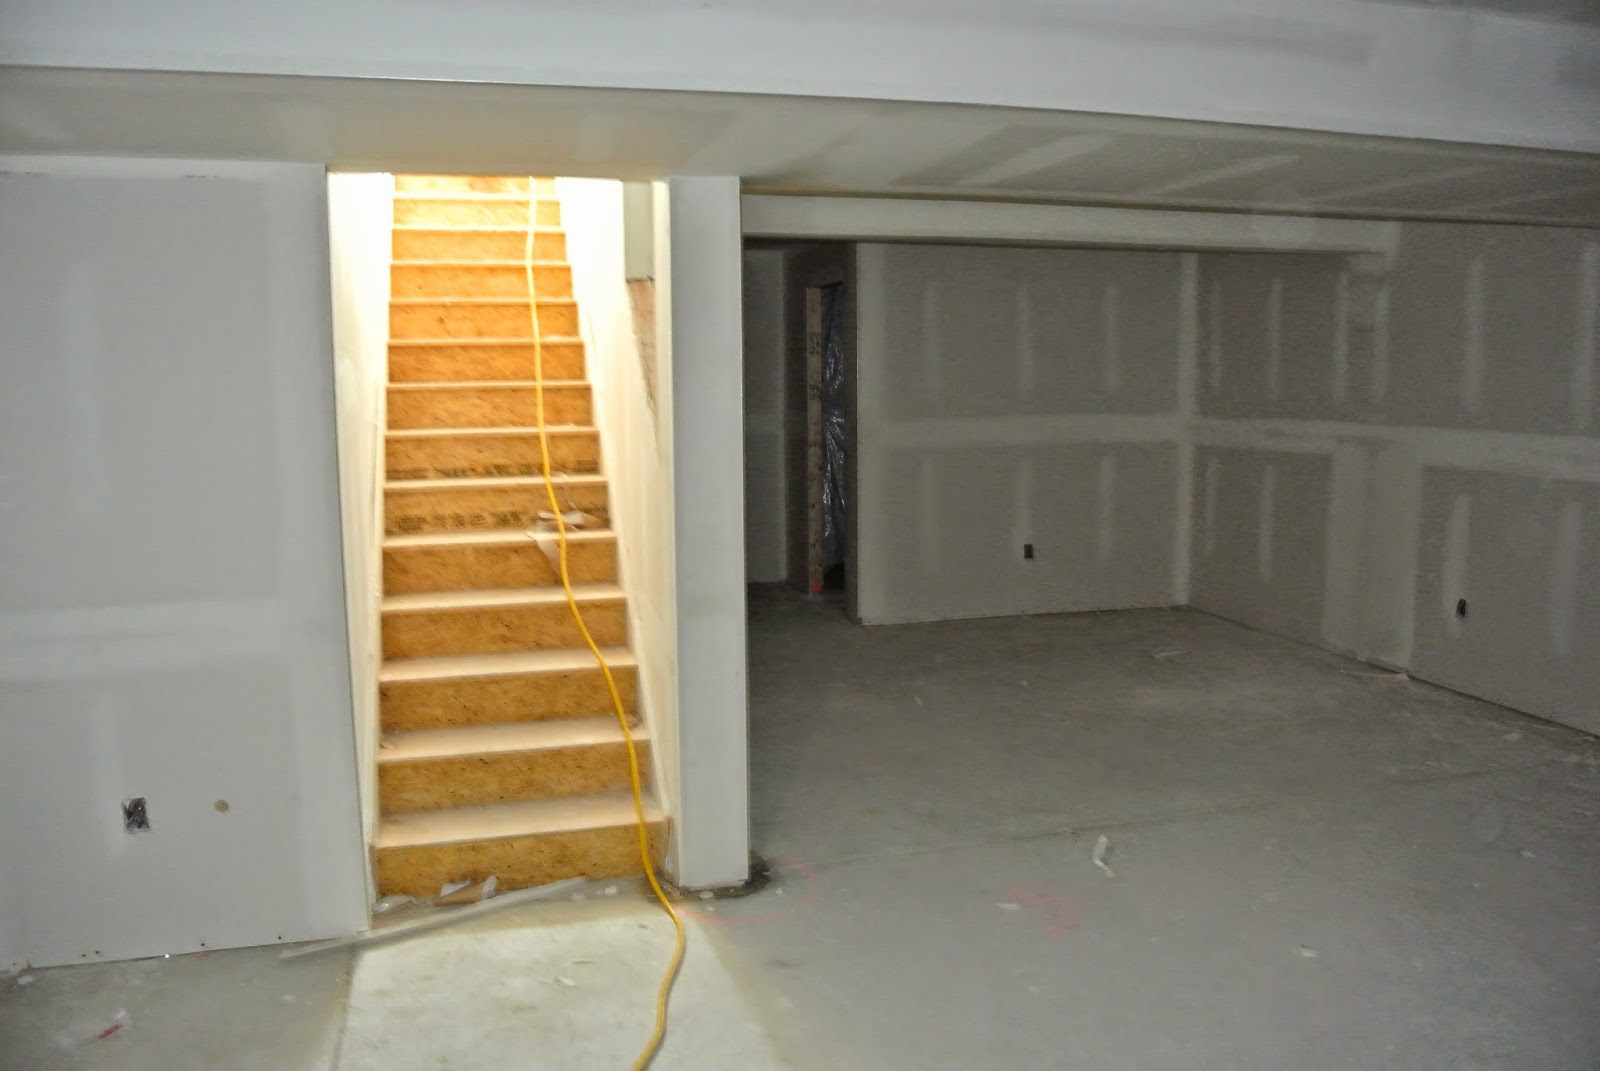 Picture of the finished basement with drywall installed